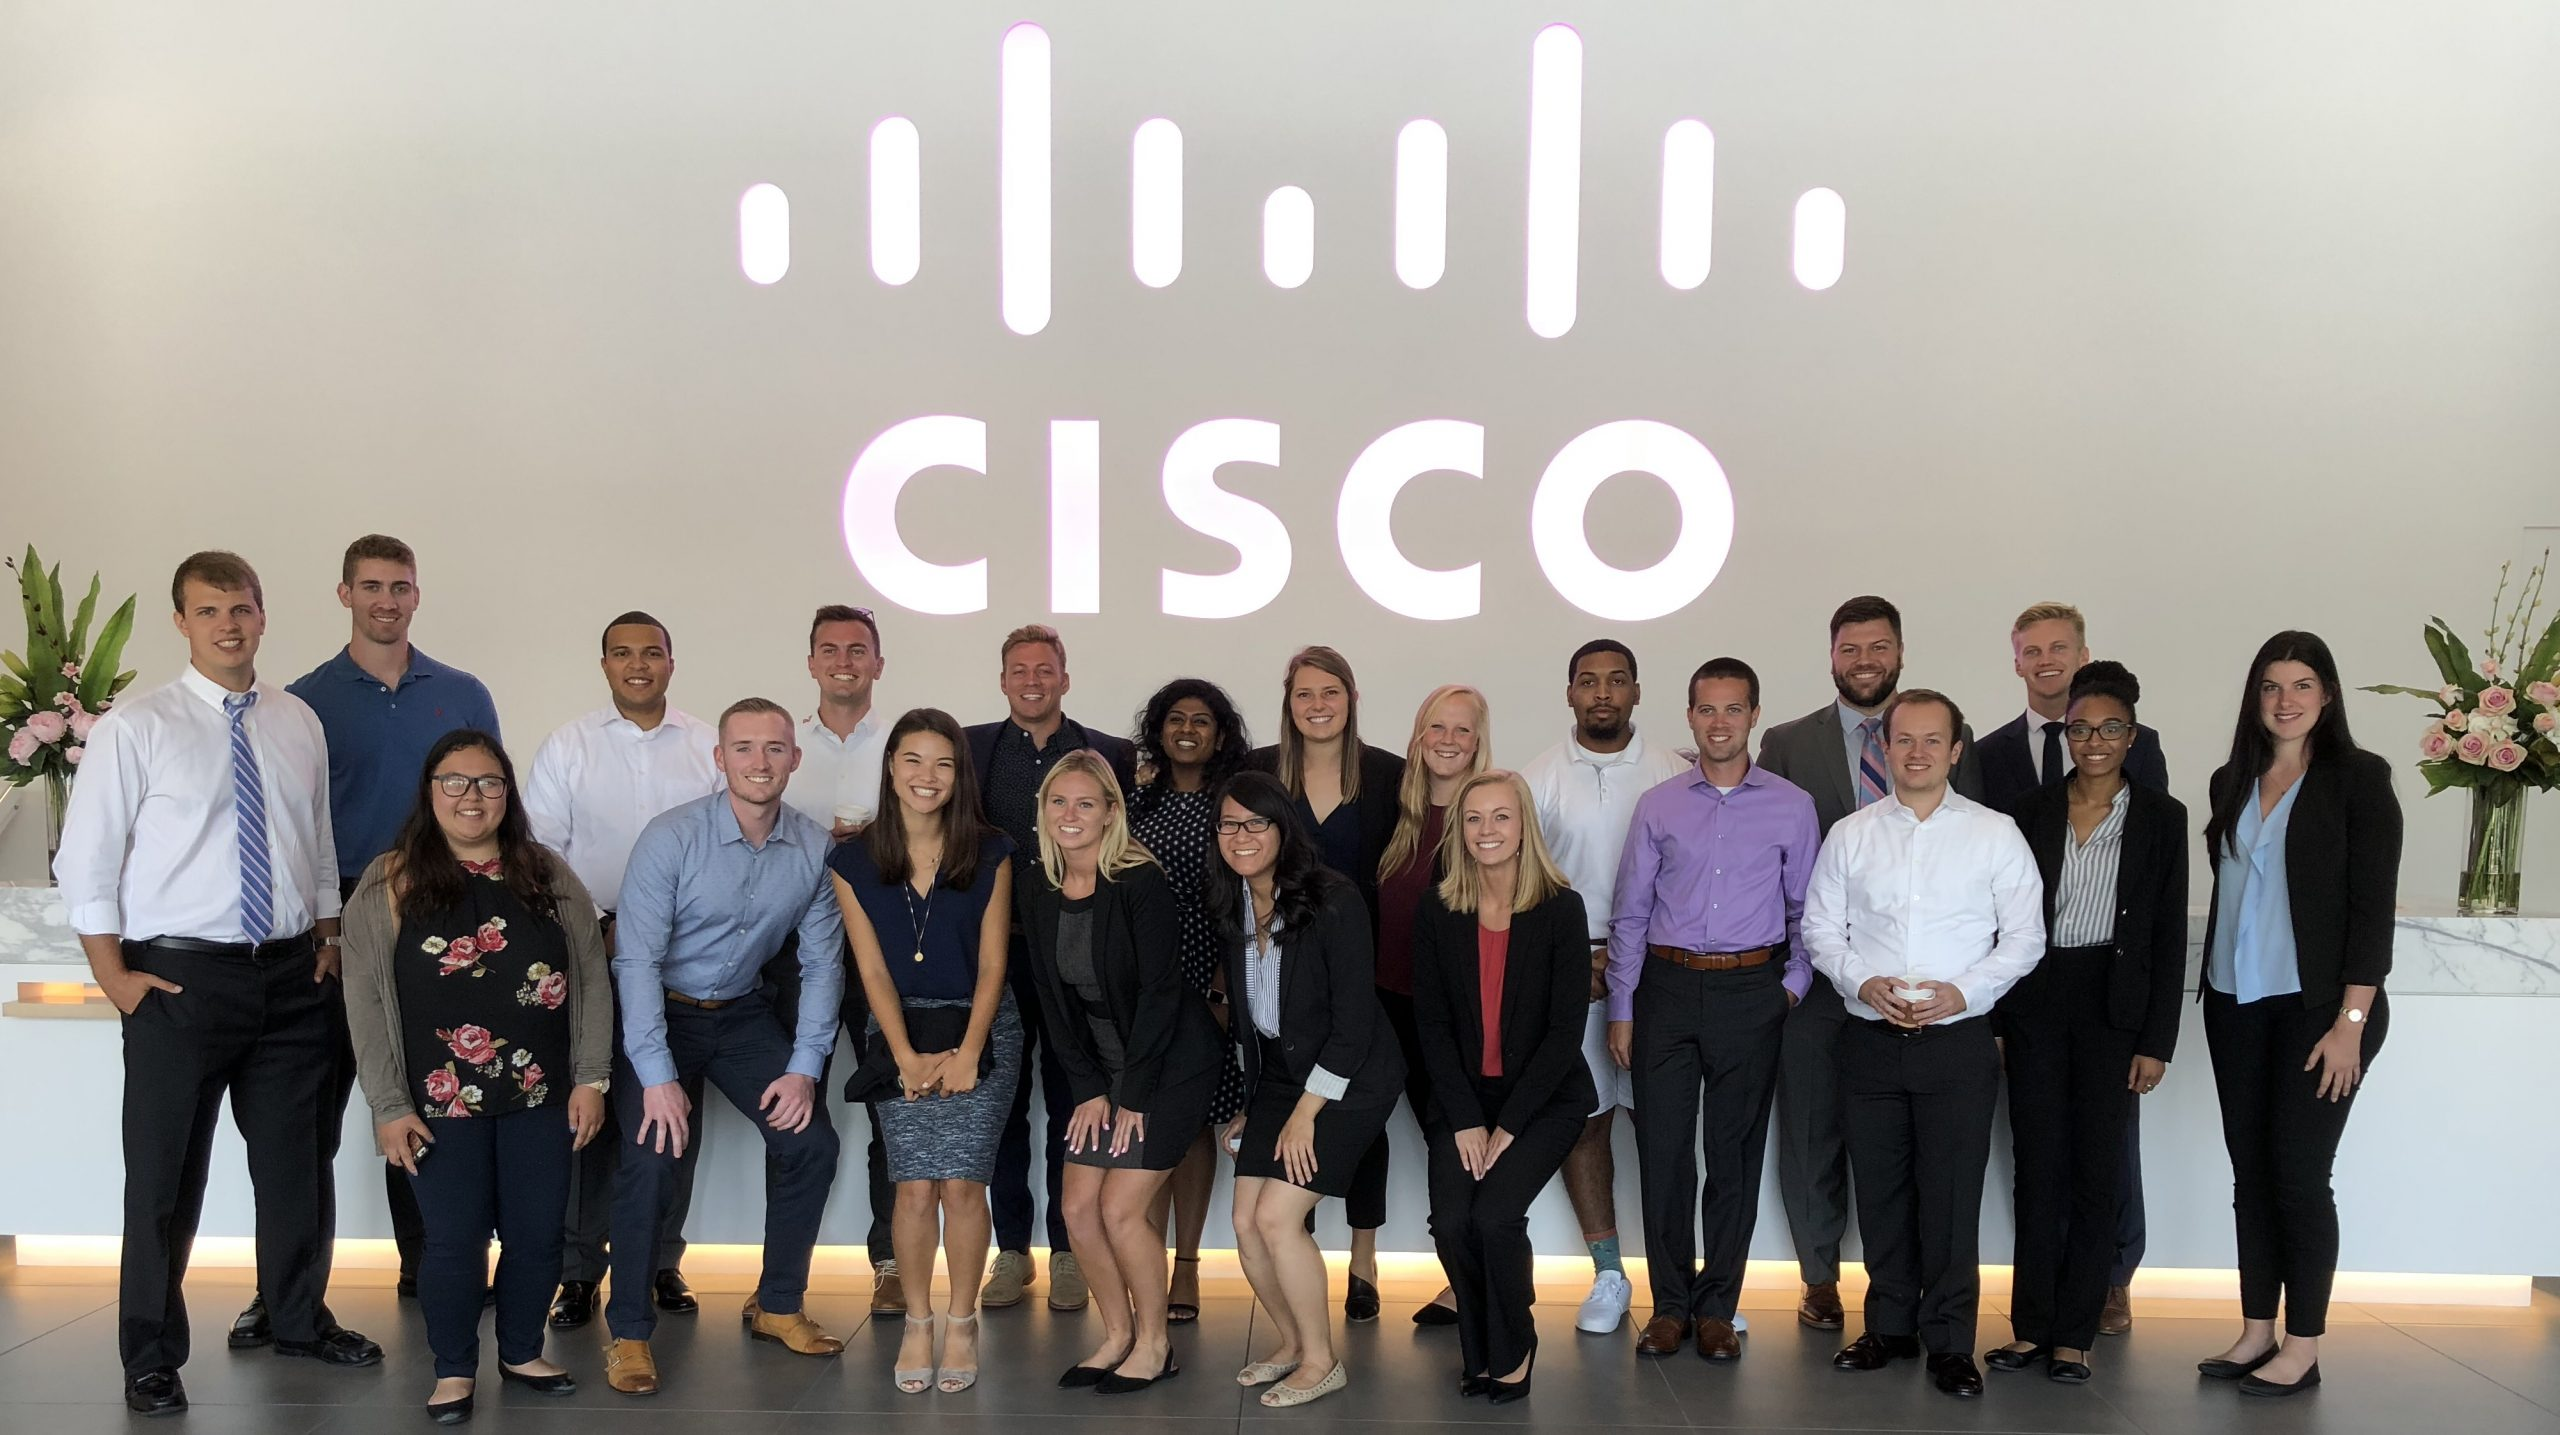 Julain and his teammates stand in a lobby under a giant lit Cisco logo on their first day of onboarding.